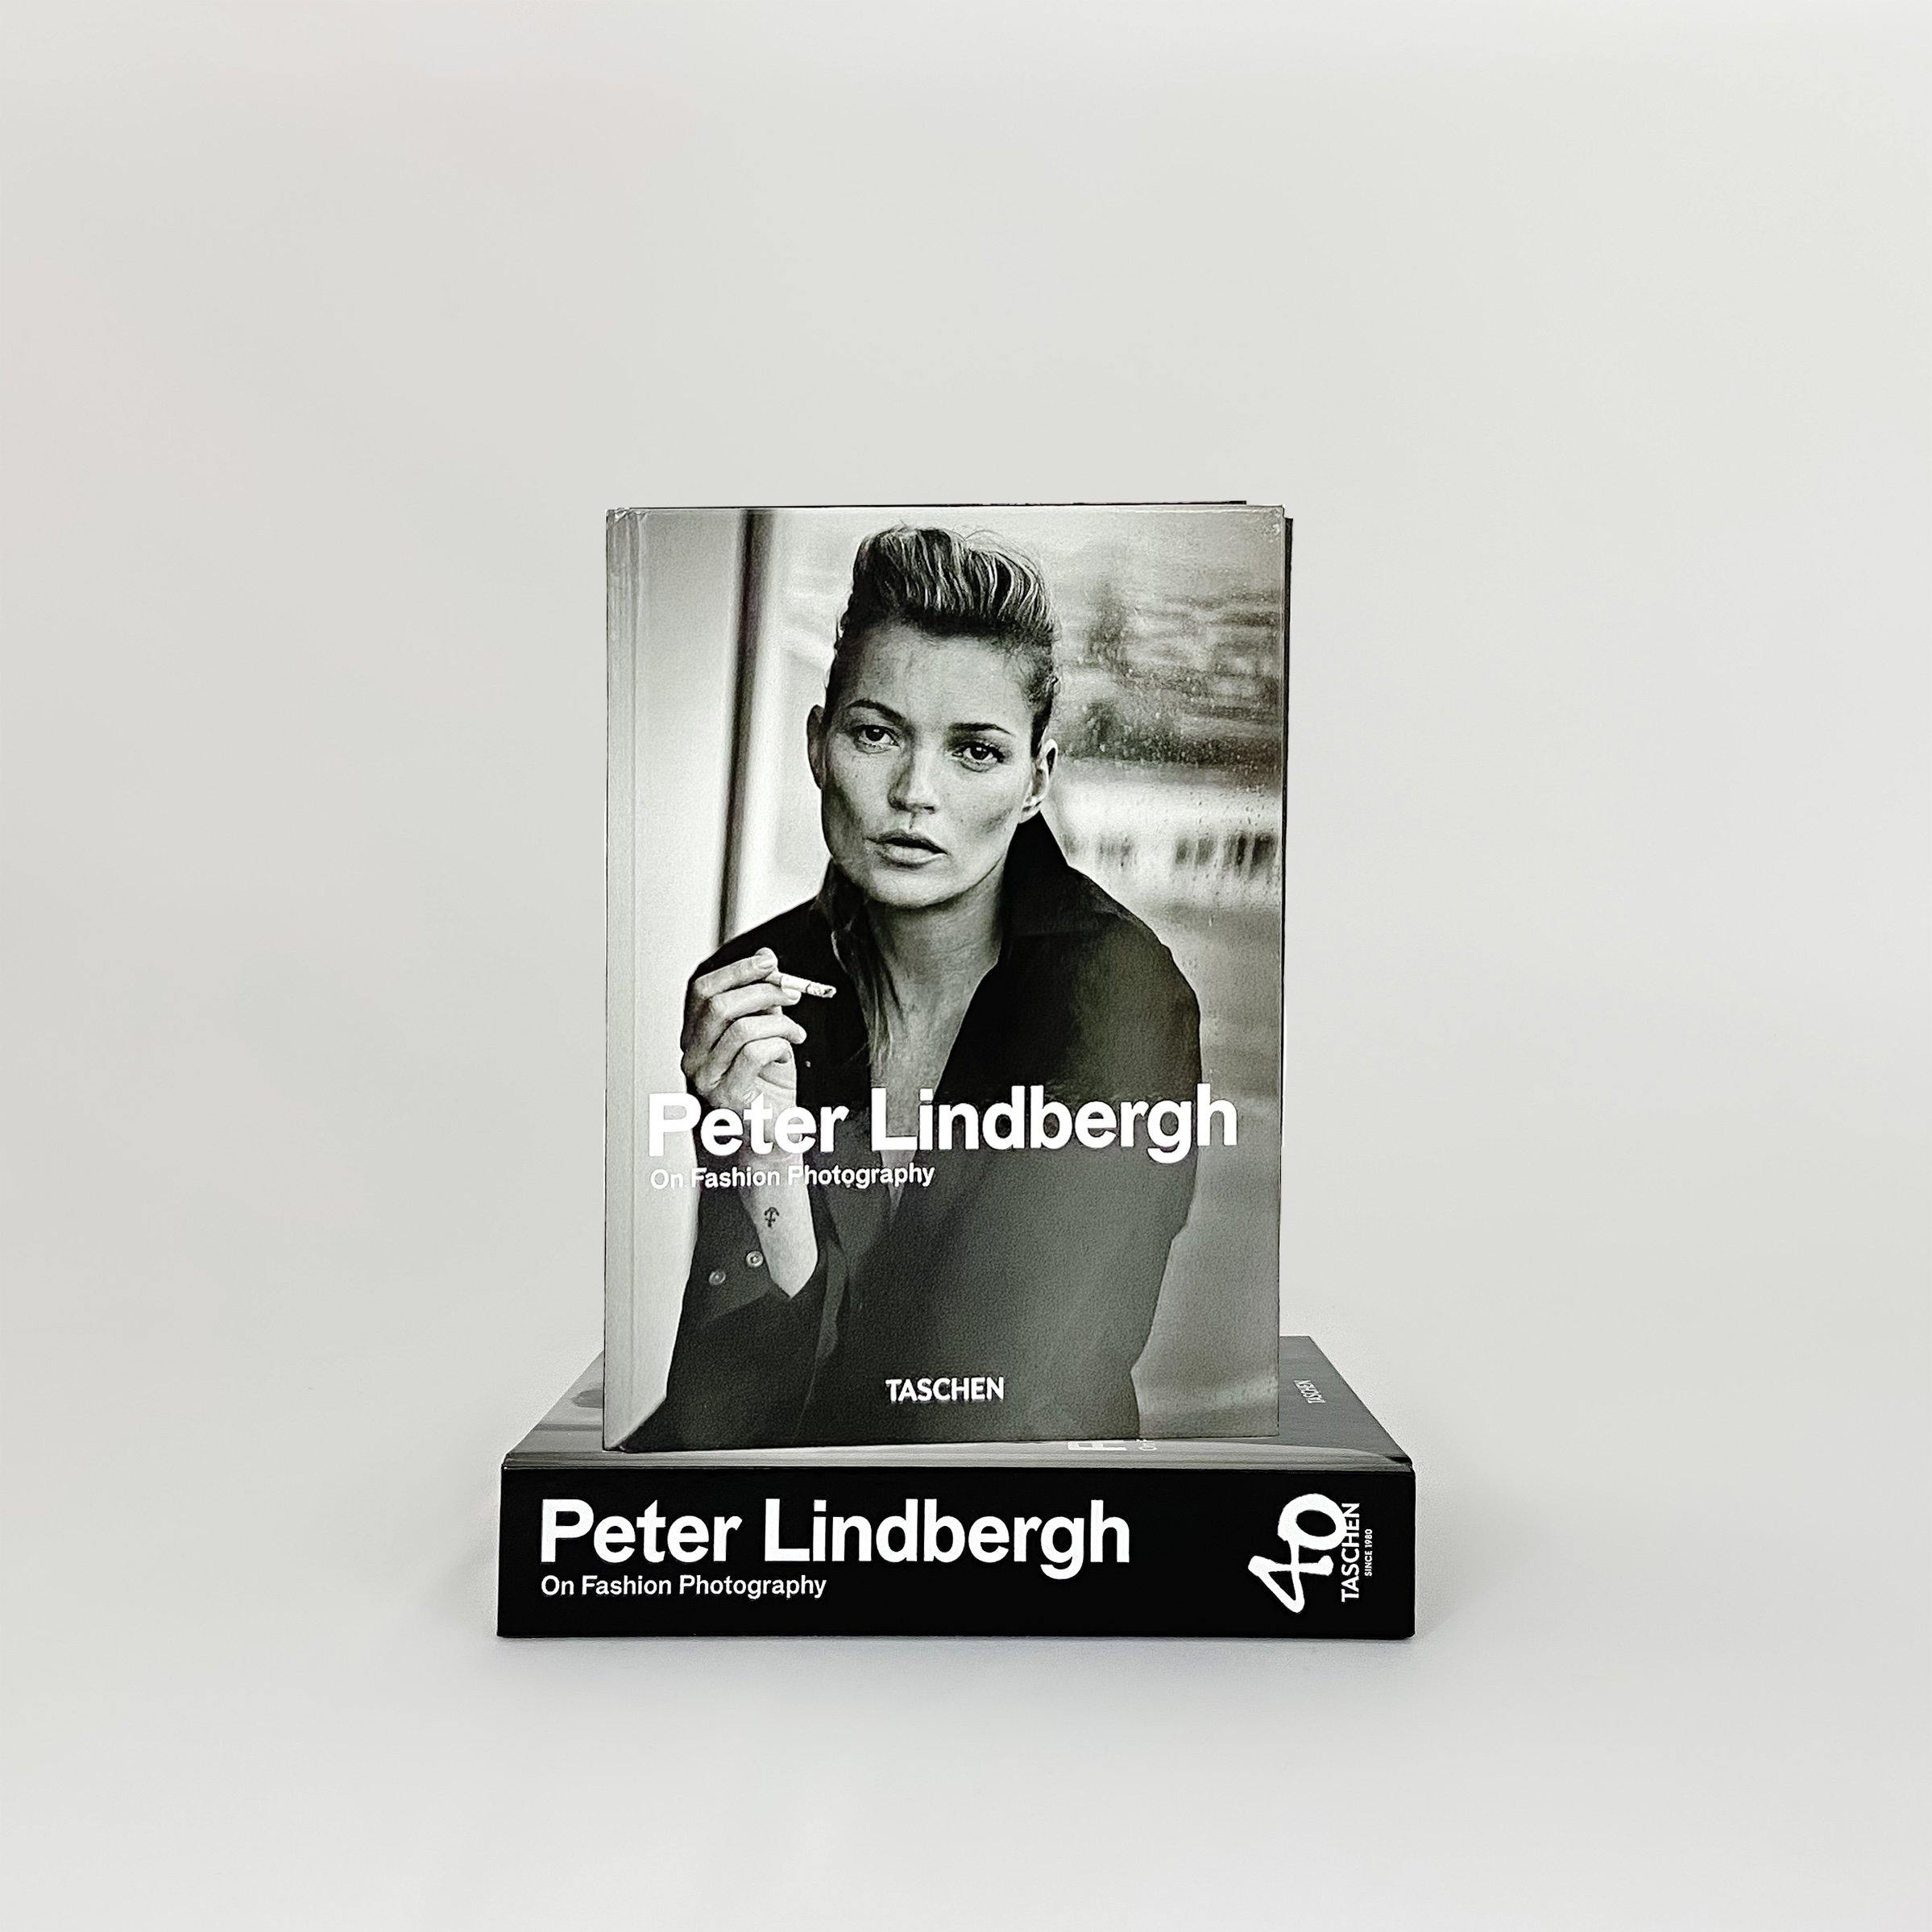 Peter Lindbergh On Fashion Photography, book